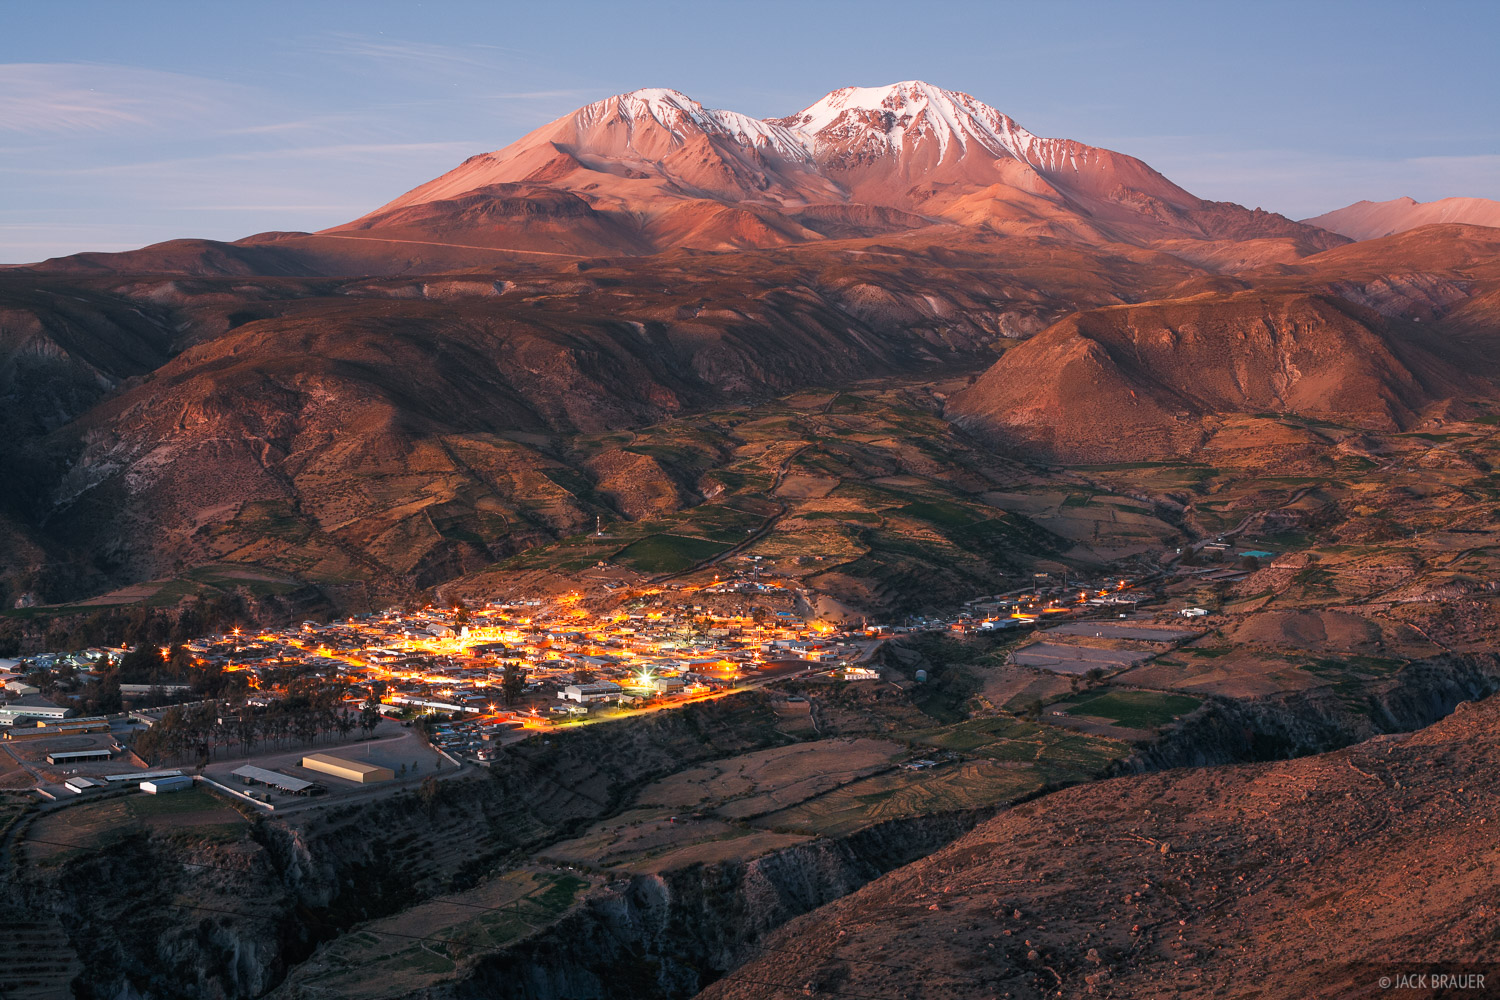 The town of Putre sits at the foot of Cerro de Tarapacá (5775m / 18,947ft) - October.